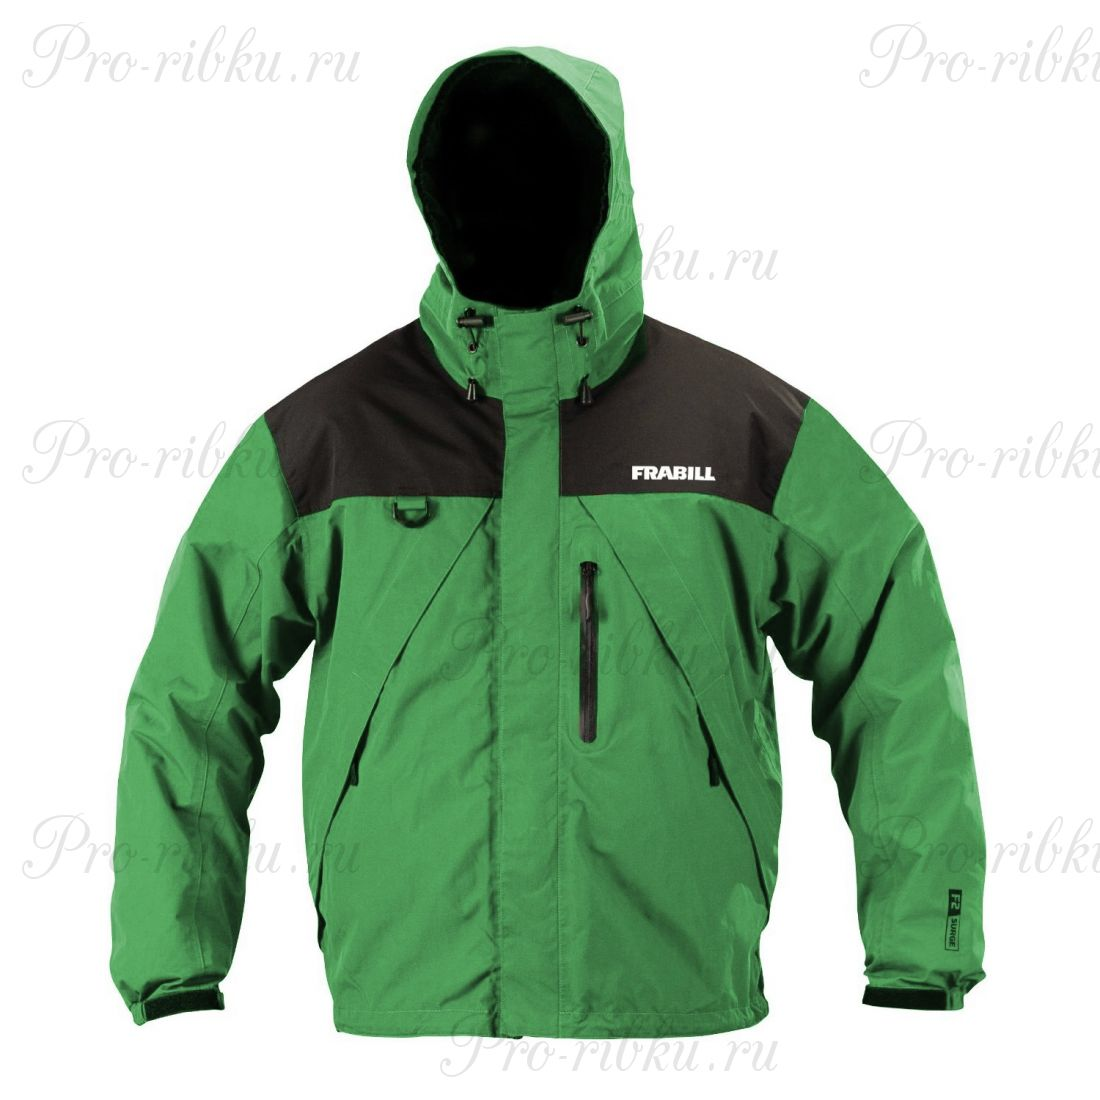 Куртка FRABILL F2 Rainsuit Jacket Green размер 2XL